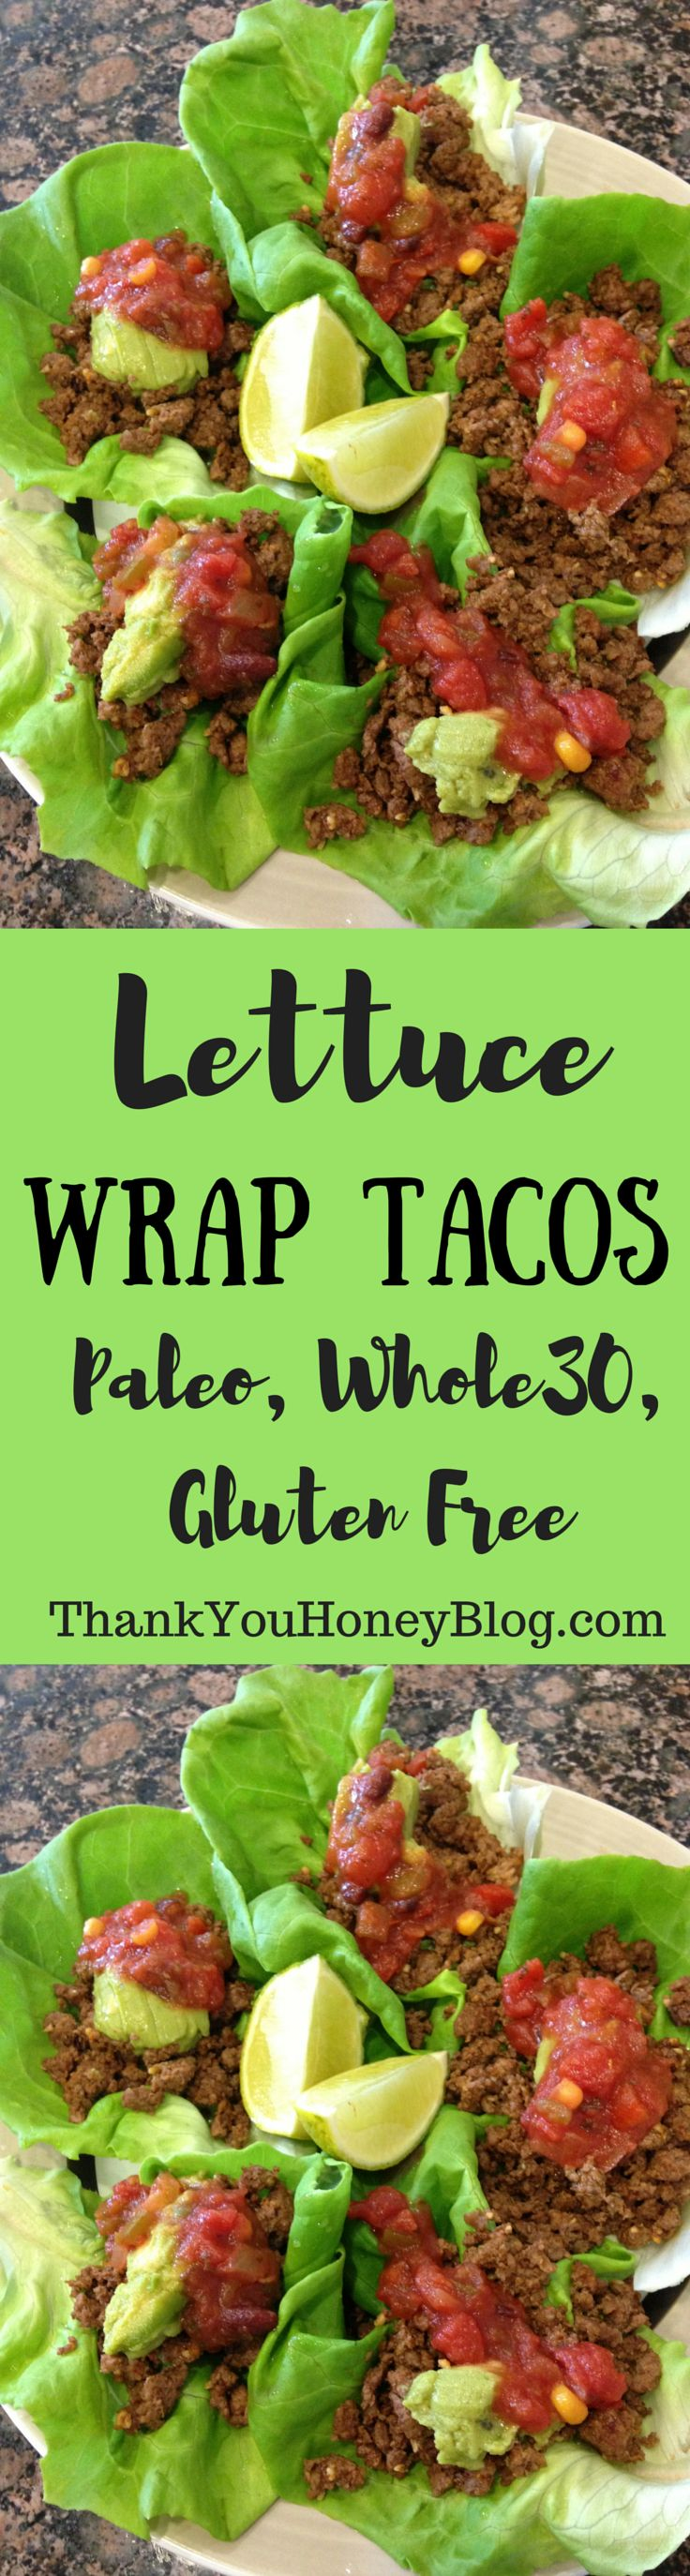 Lettuce Wrap Tacos, Paleo, Whole 30, Gluten Free, Recipe, Lettuce Wrapped, Tacos, Dinner, Main Dish, Supper, Healthy, Easy, Simple Recipe, Meal, How To, Tutorial, Taco Night, Quick, Click through and pin it to read later! http://thankyouhoneyblog.com